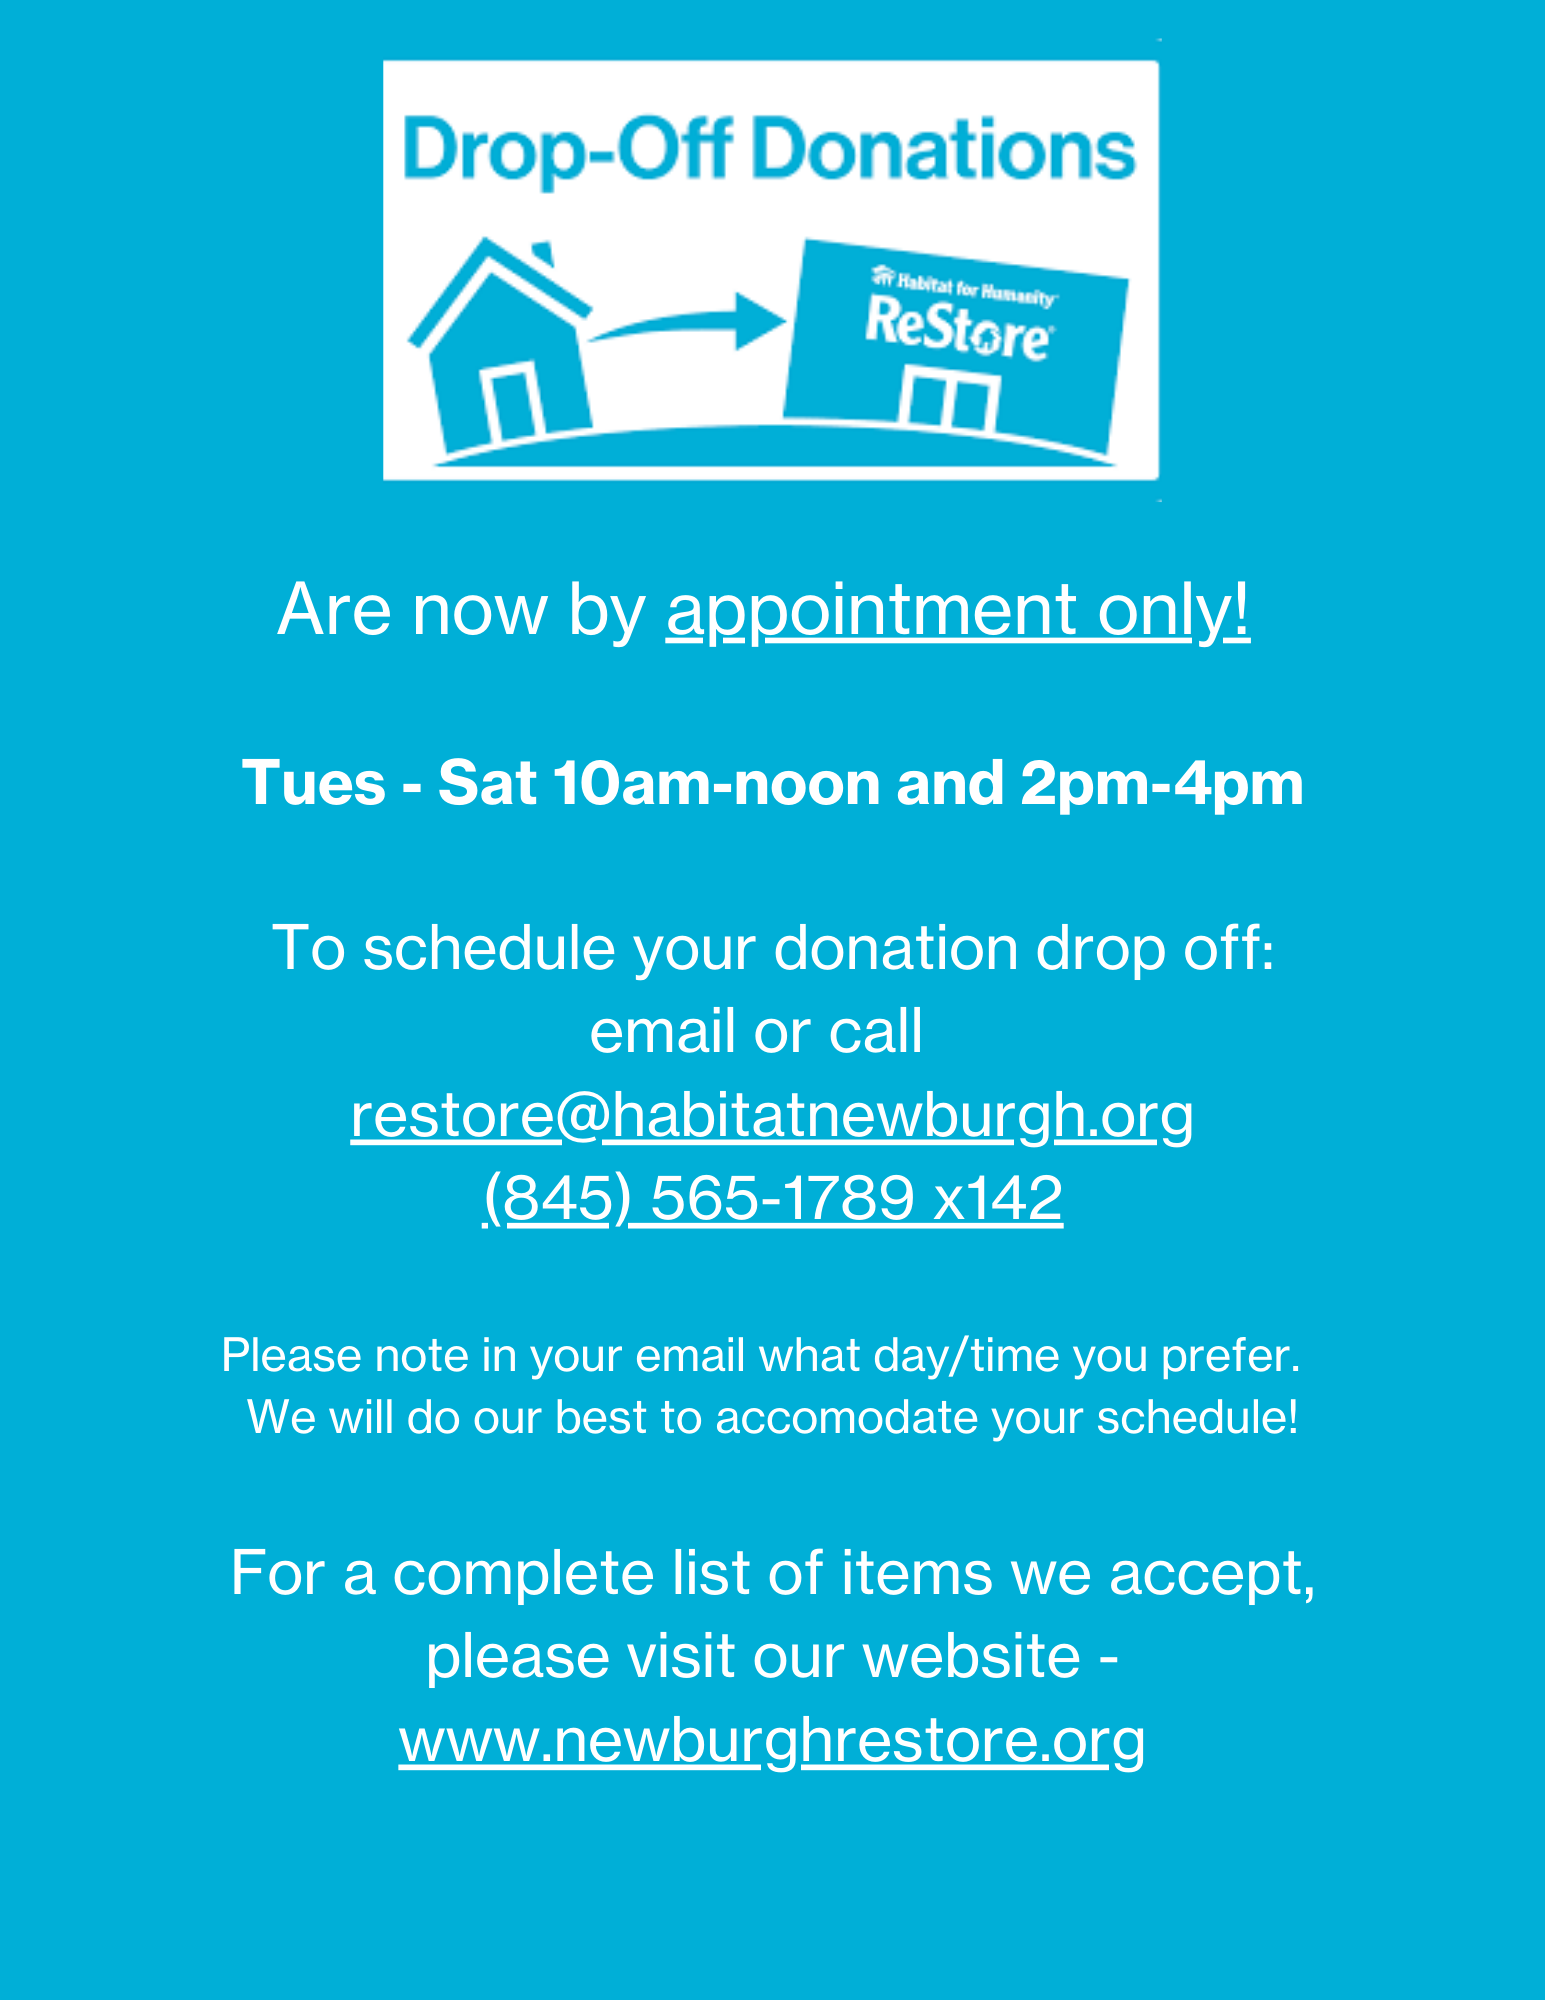 ReStore Drop Off Donations - Schedule Your Appointment Today!